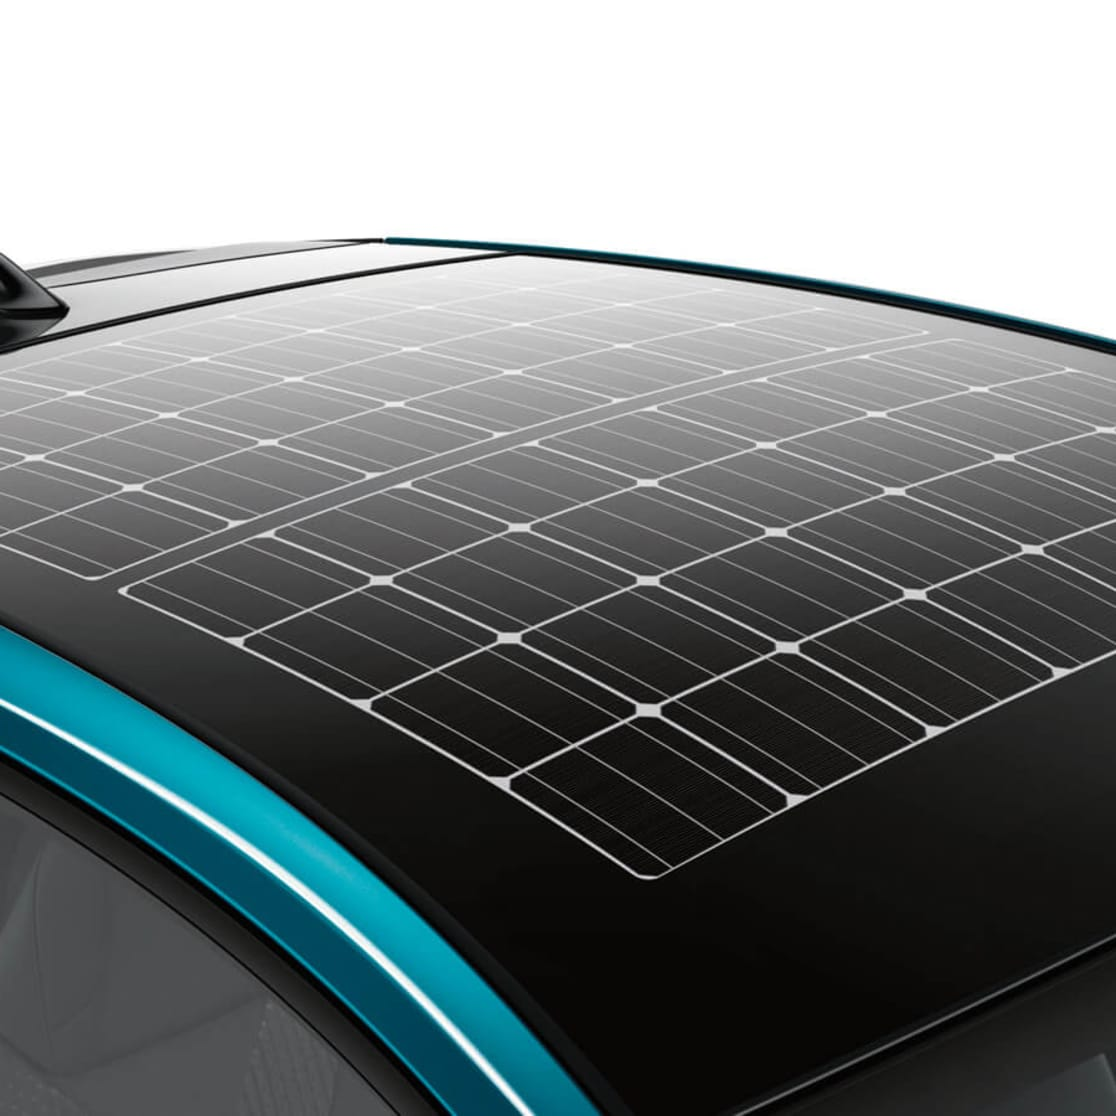 Prius Plug In Woodford Hills Motor Group Toyota Solar Panel Car The Advanced Roof Not Only Powers Electronics Within Hybrid On Move It Will Also Help To Recharge Battery When Its Parked